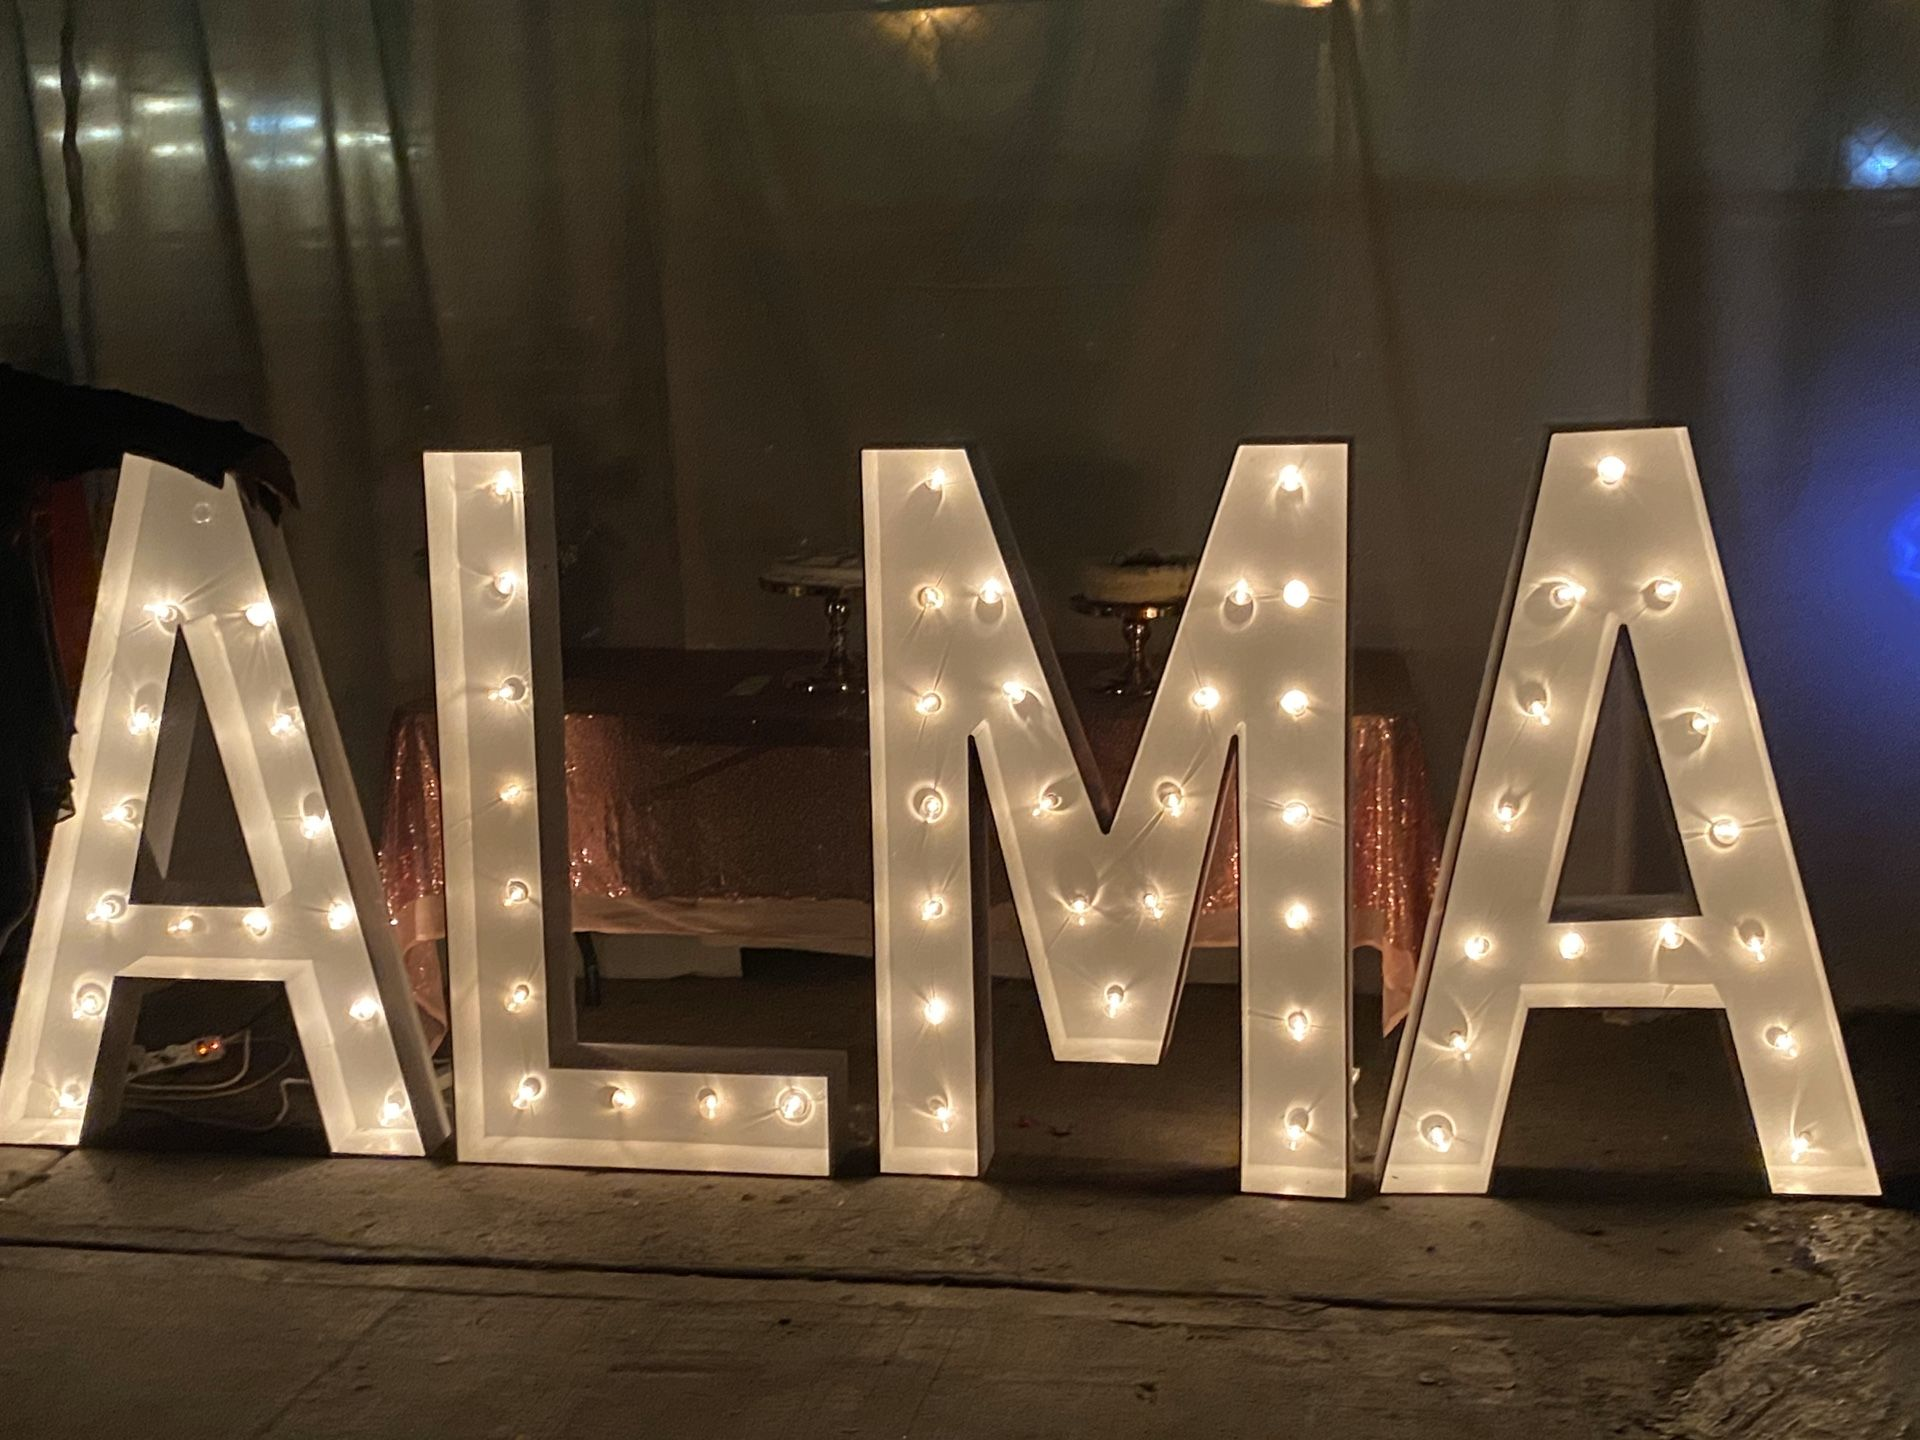 Party marquee letters 4 ft tall